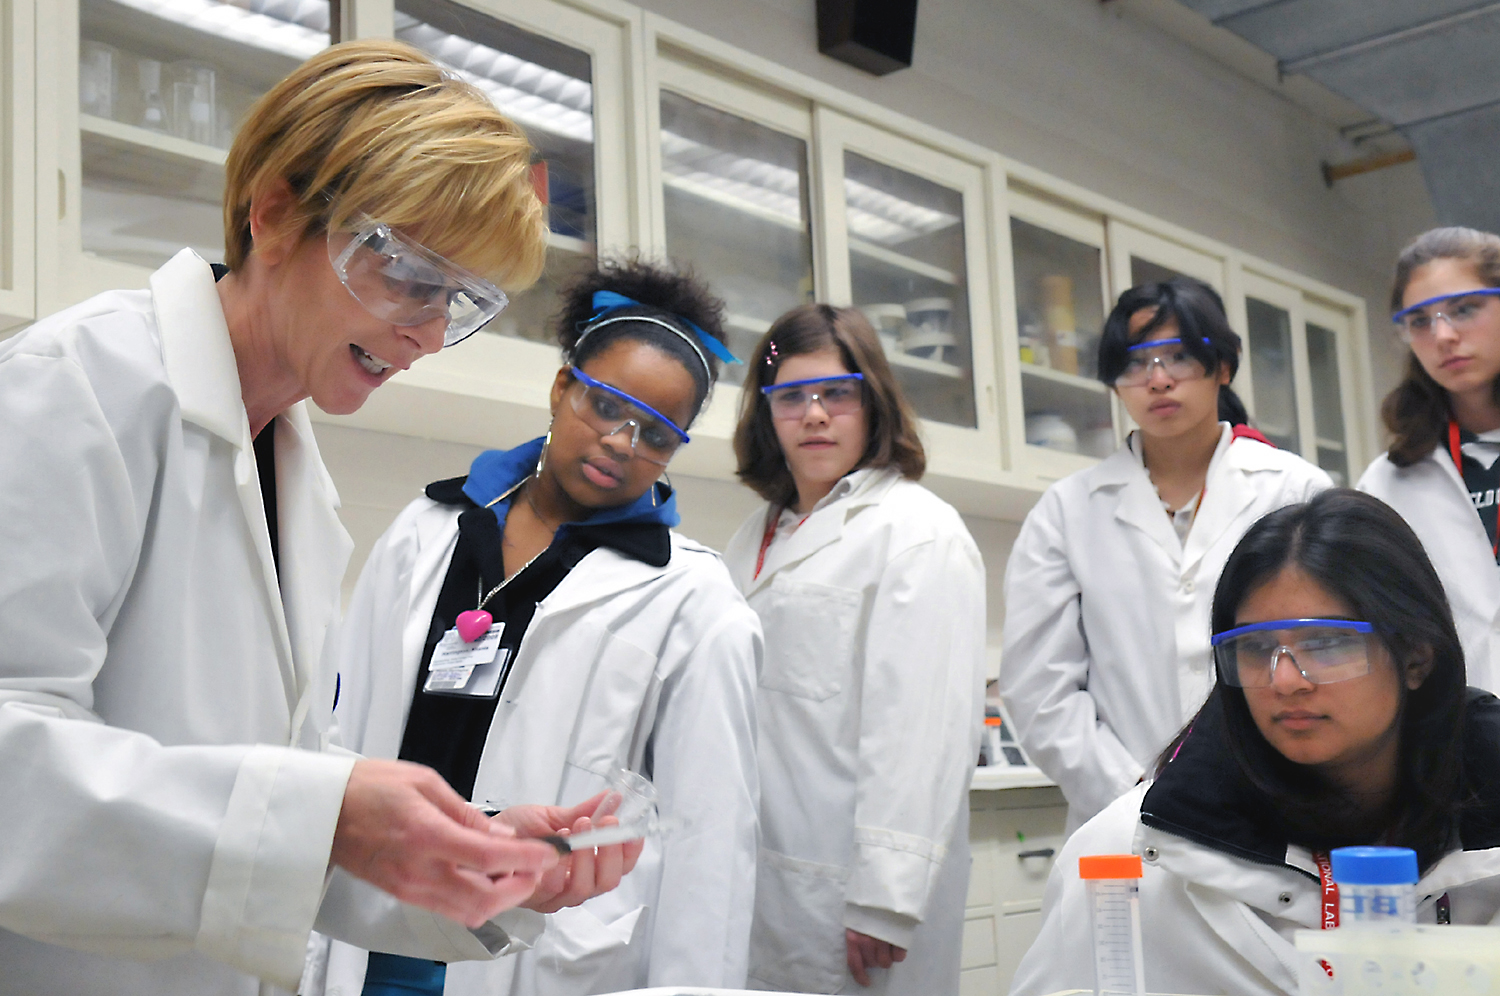 Collaborating for gender equality in STEM